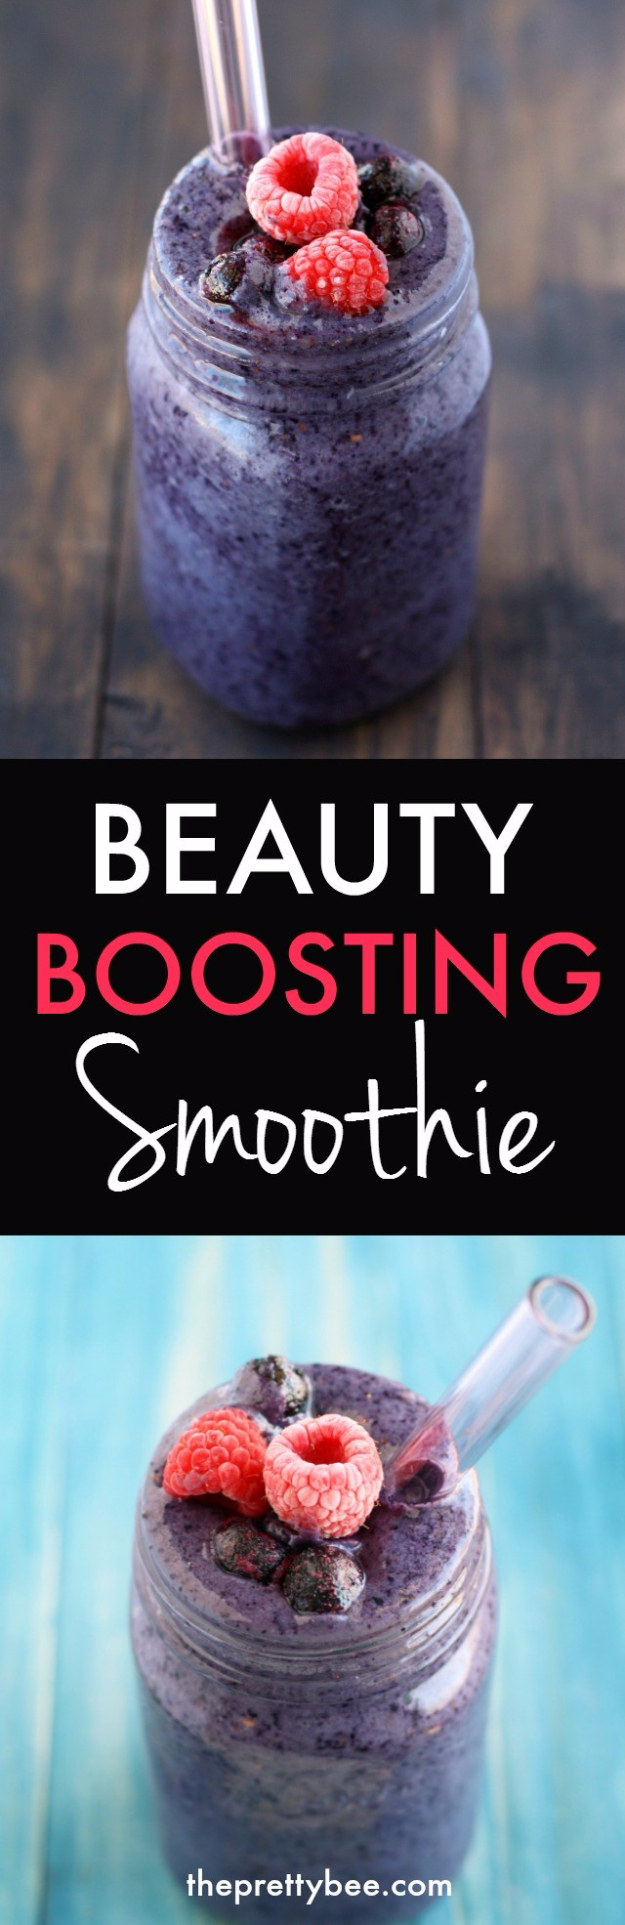 Healthy Smoothie Recipes - Beauty Boosting Smootihie - Easy ideas perfect for breakfast, energy. Low calorie and high protein recipes for weightloss and to lose weight. Simple homemade recipe ideas that kids love. Quick EASY morning recipes before work and school, after workout #smoothies #healthy #smoothie #healthyrecipes #recipes